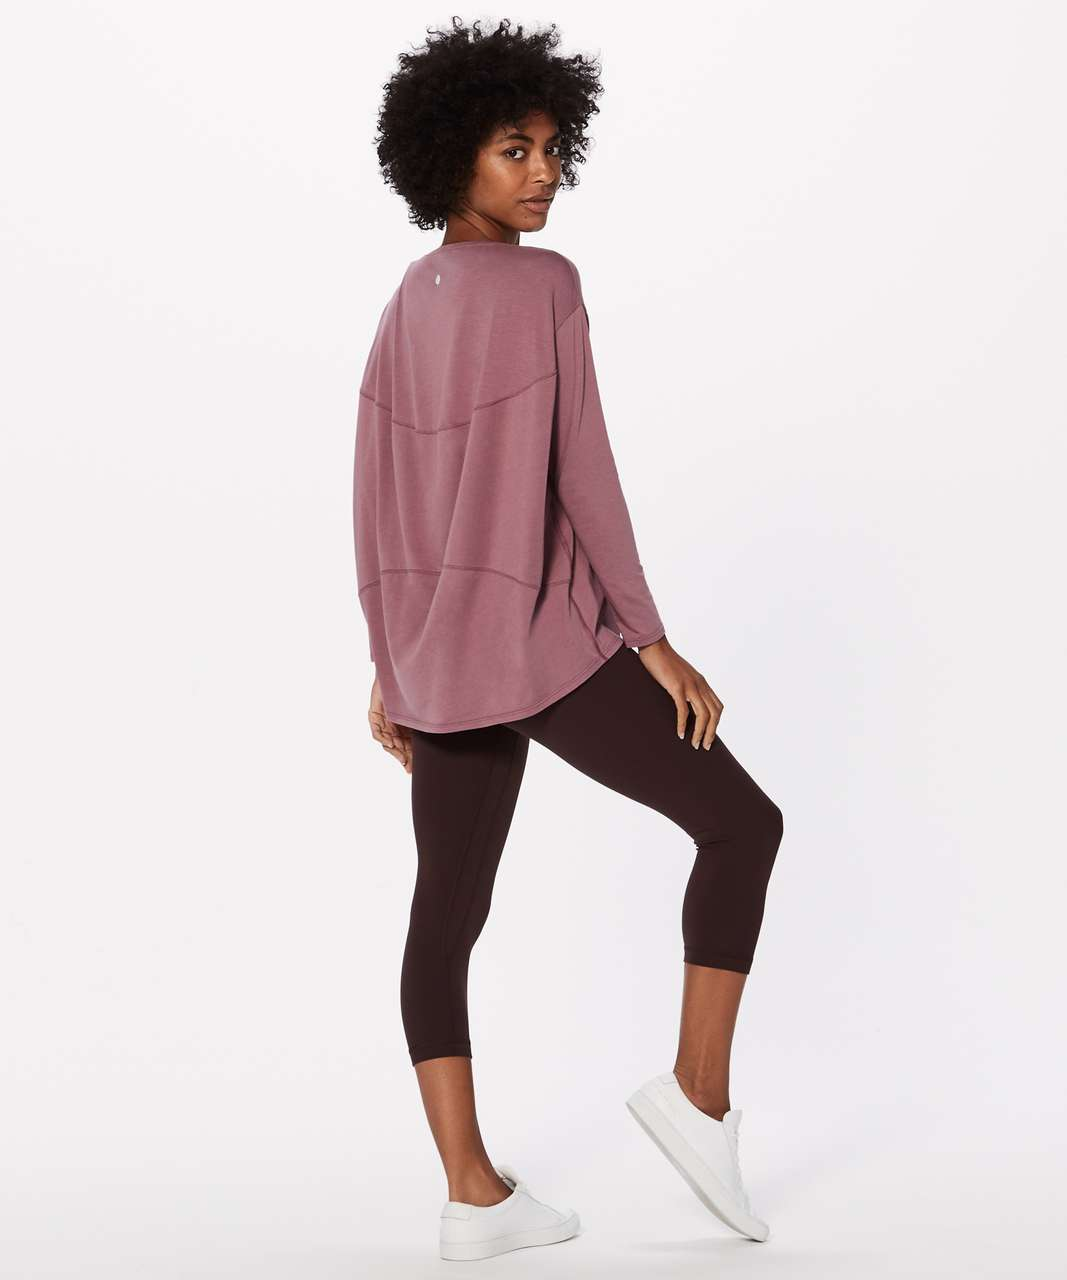 Lululemon Back In Action Long Sleeve - Figue